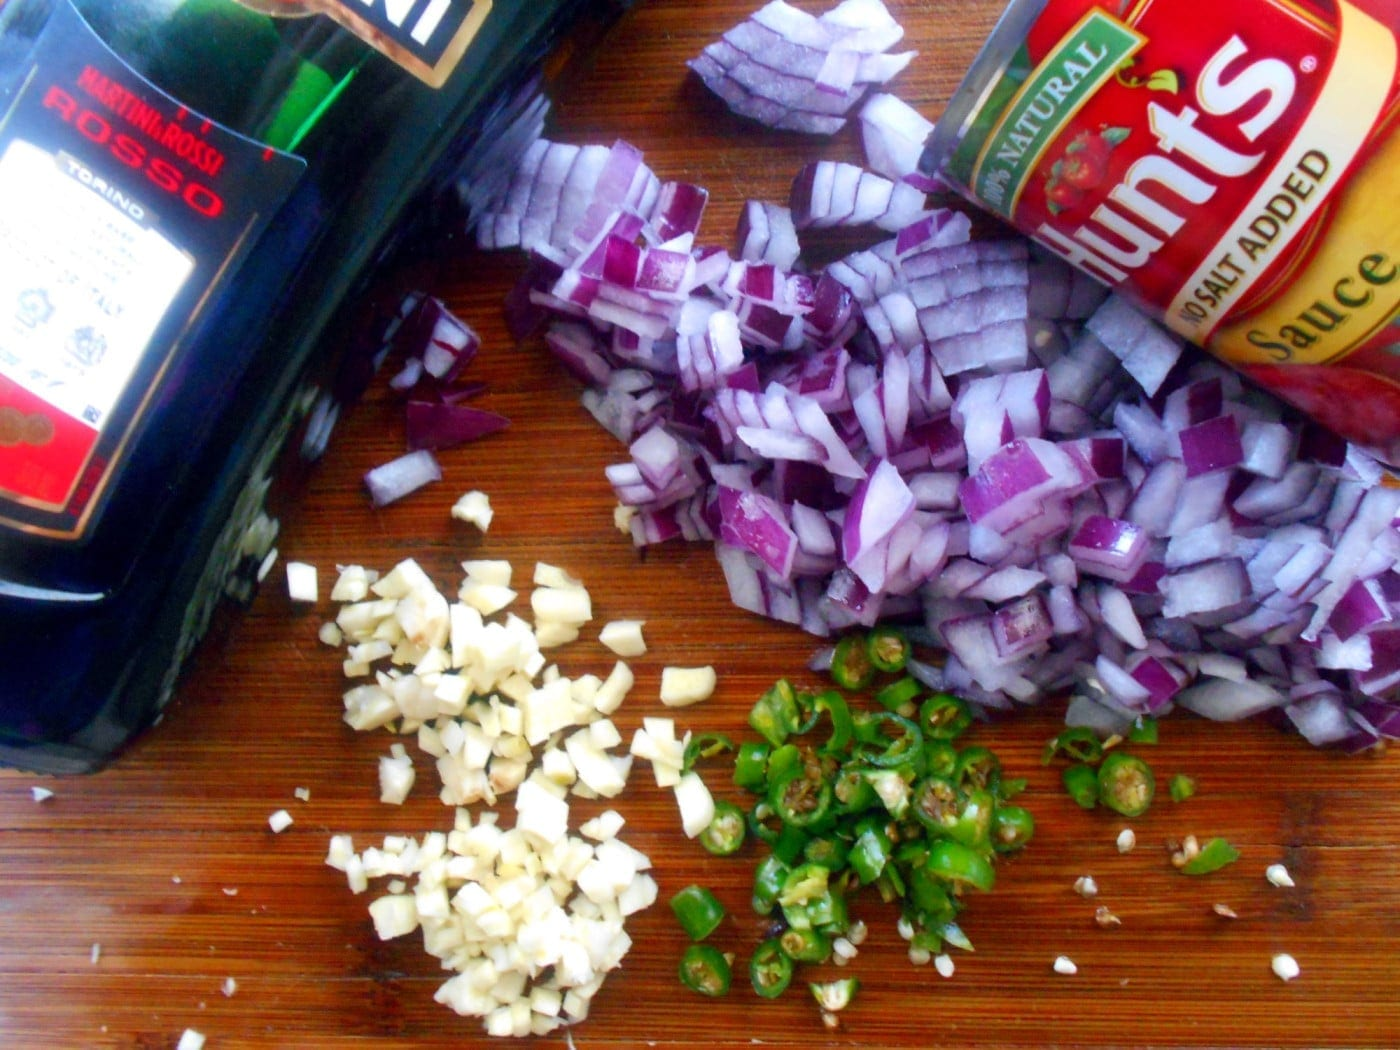 How to make Marinara Sauce? This version uses 9 varieties of marinara sauce to make the delicious Italian Staple. Adding tons of garlic and sweet vermouth makes all the difference